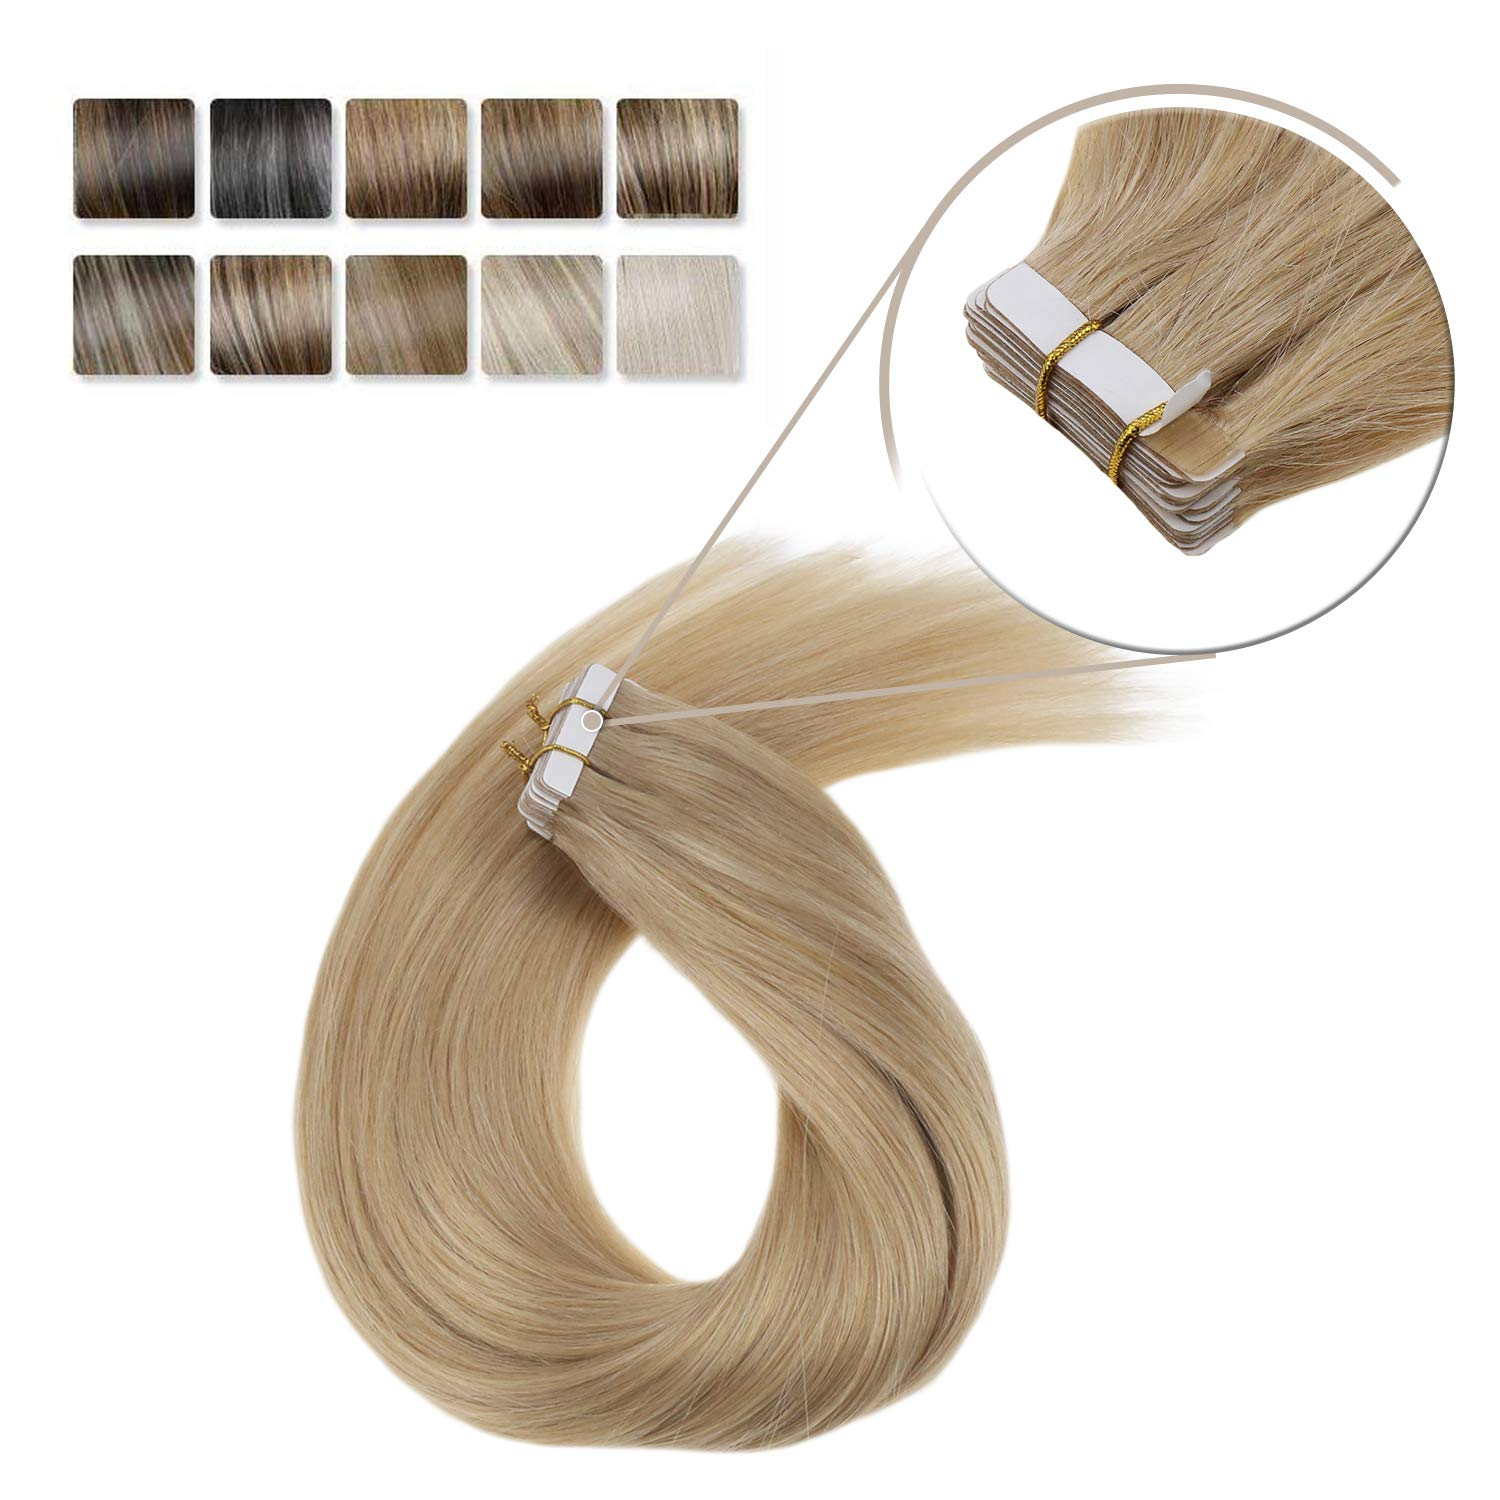 LaaVoo 24 Inch Tape on Hair Extensions Human Dark Honey Blone Glue in Real Weft Silky Straight Hair Extensions Skin Weft Real Natural Straight Solid Color 20pcs 50g/Pack